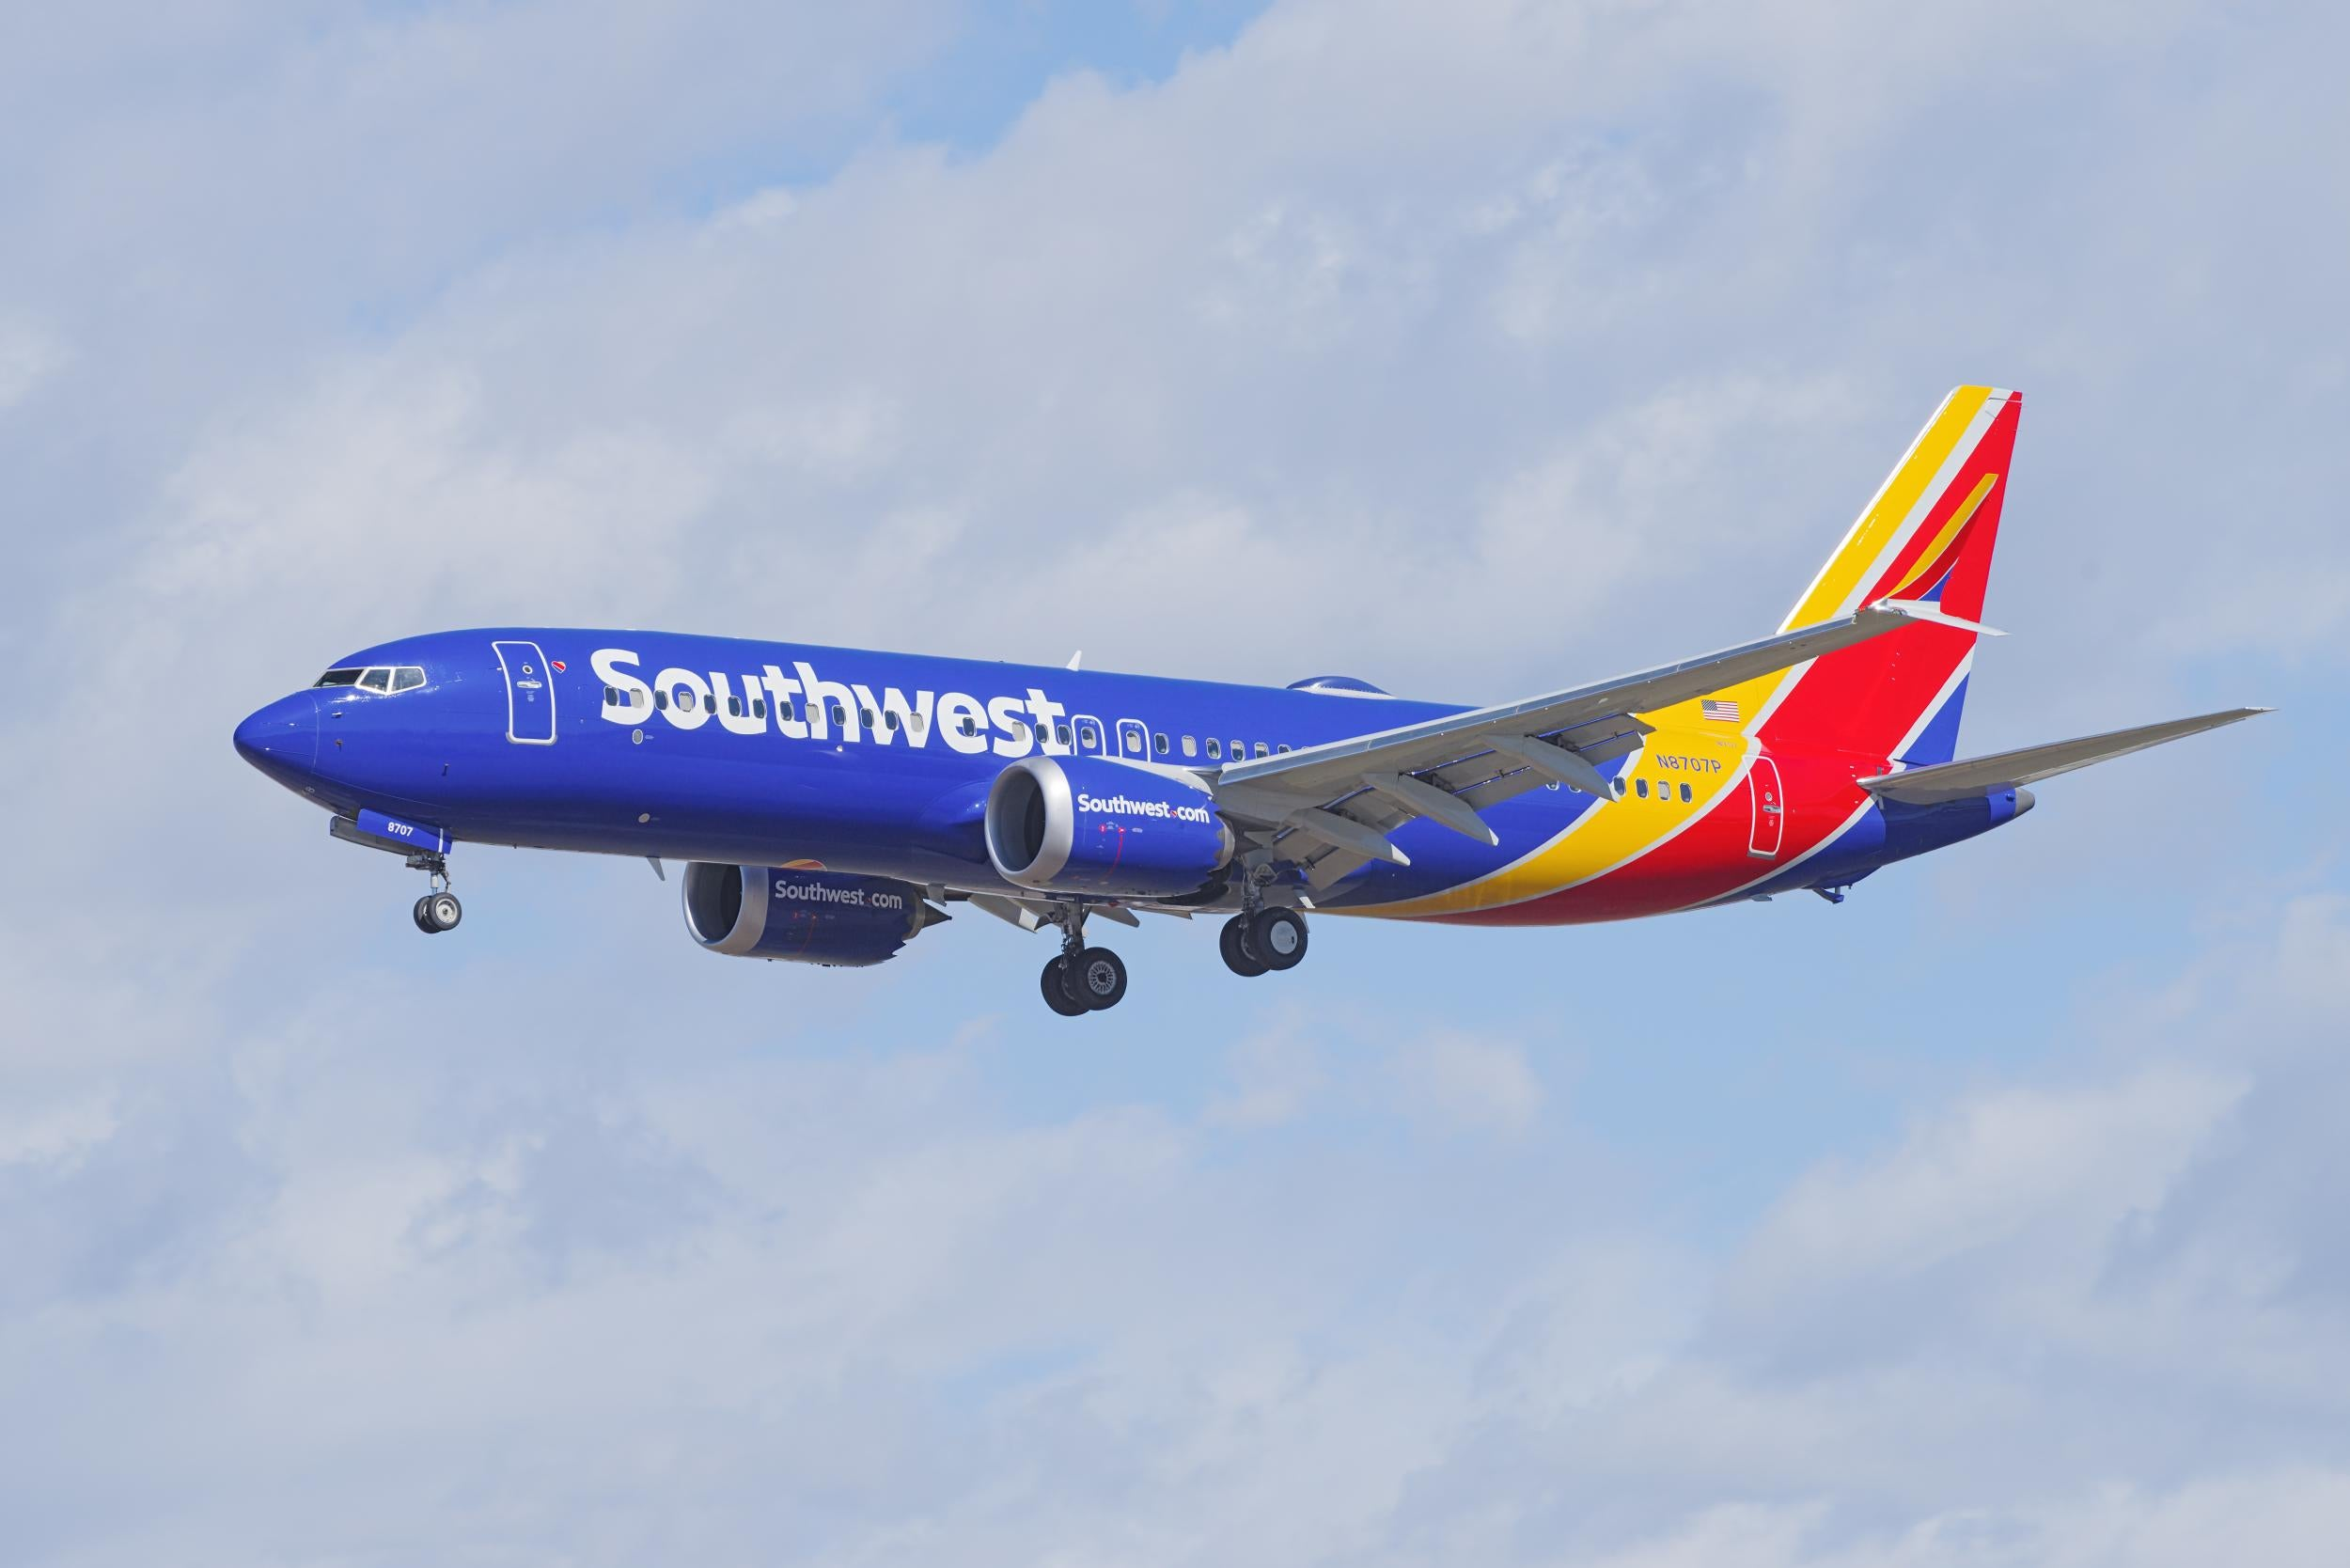 Southwest Airlines launches flights to Hawaii from 49